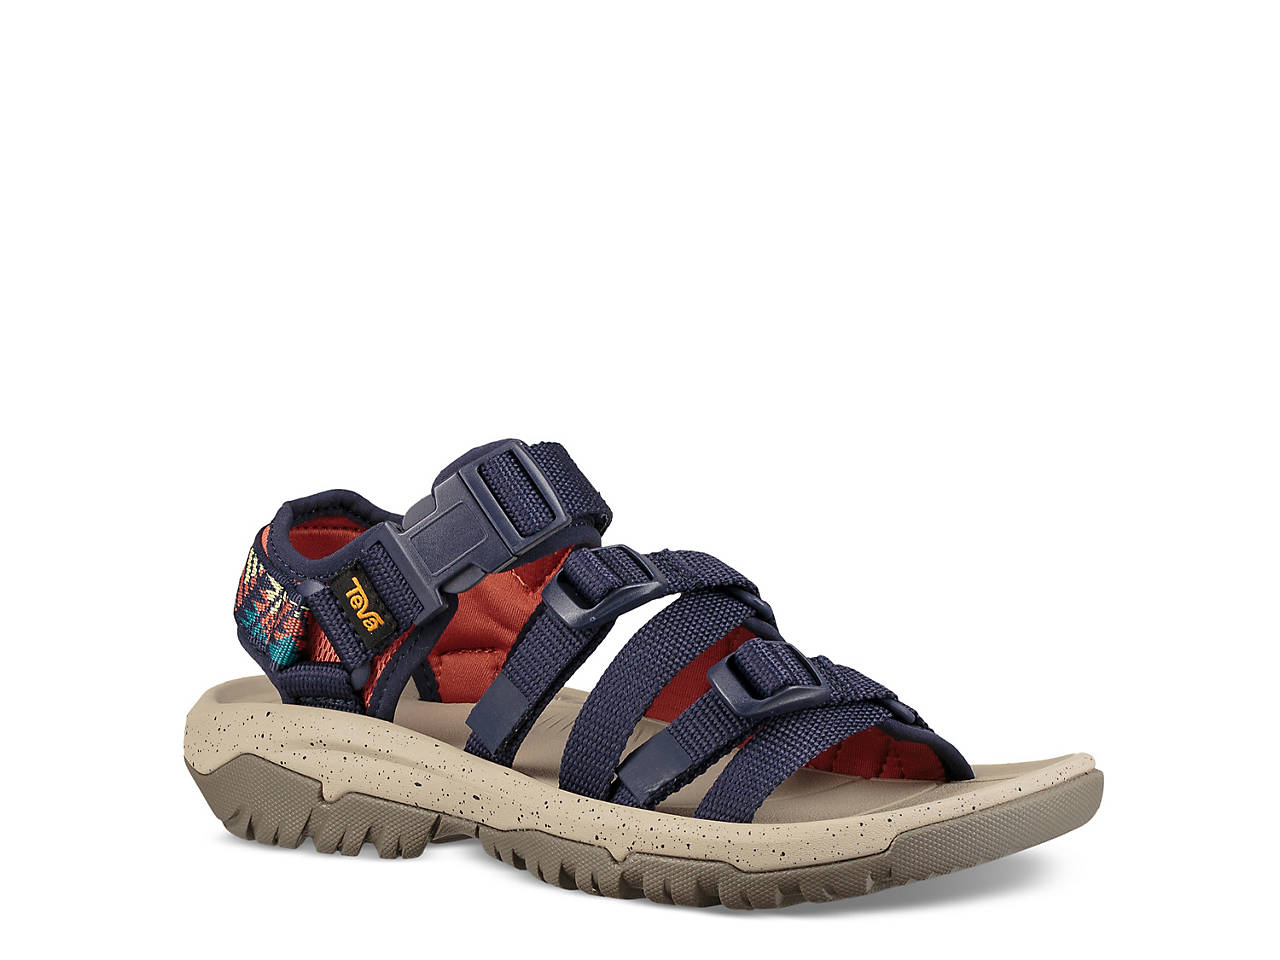 1fcab1a16 Teva Hurricane XLT2 Alp Sandal Women s Shoes